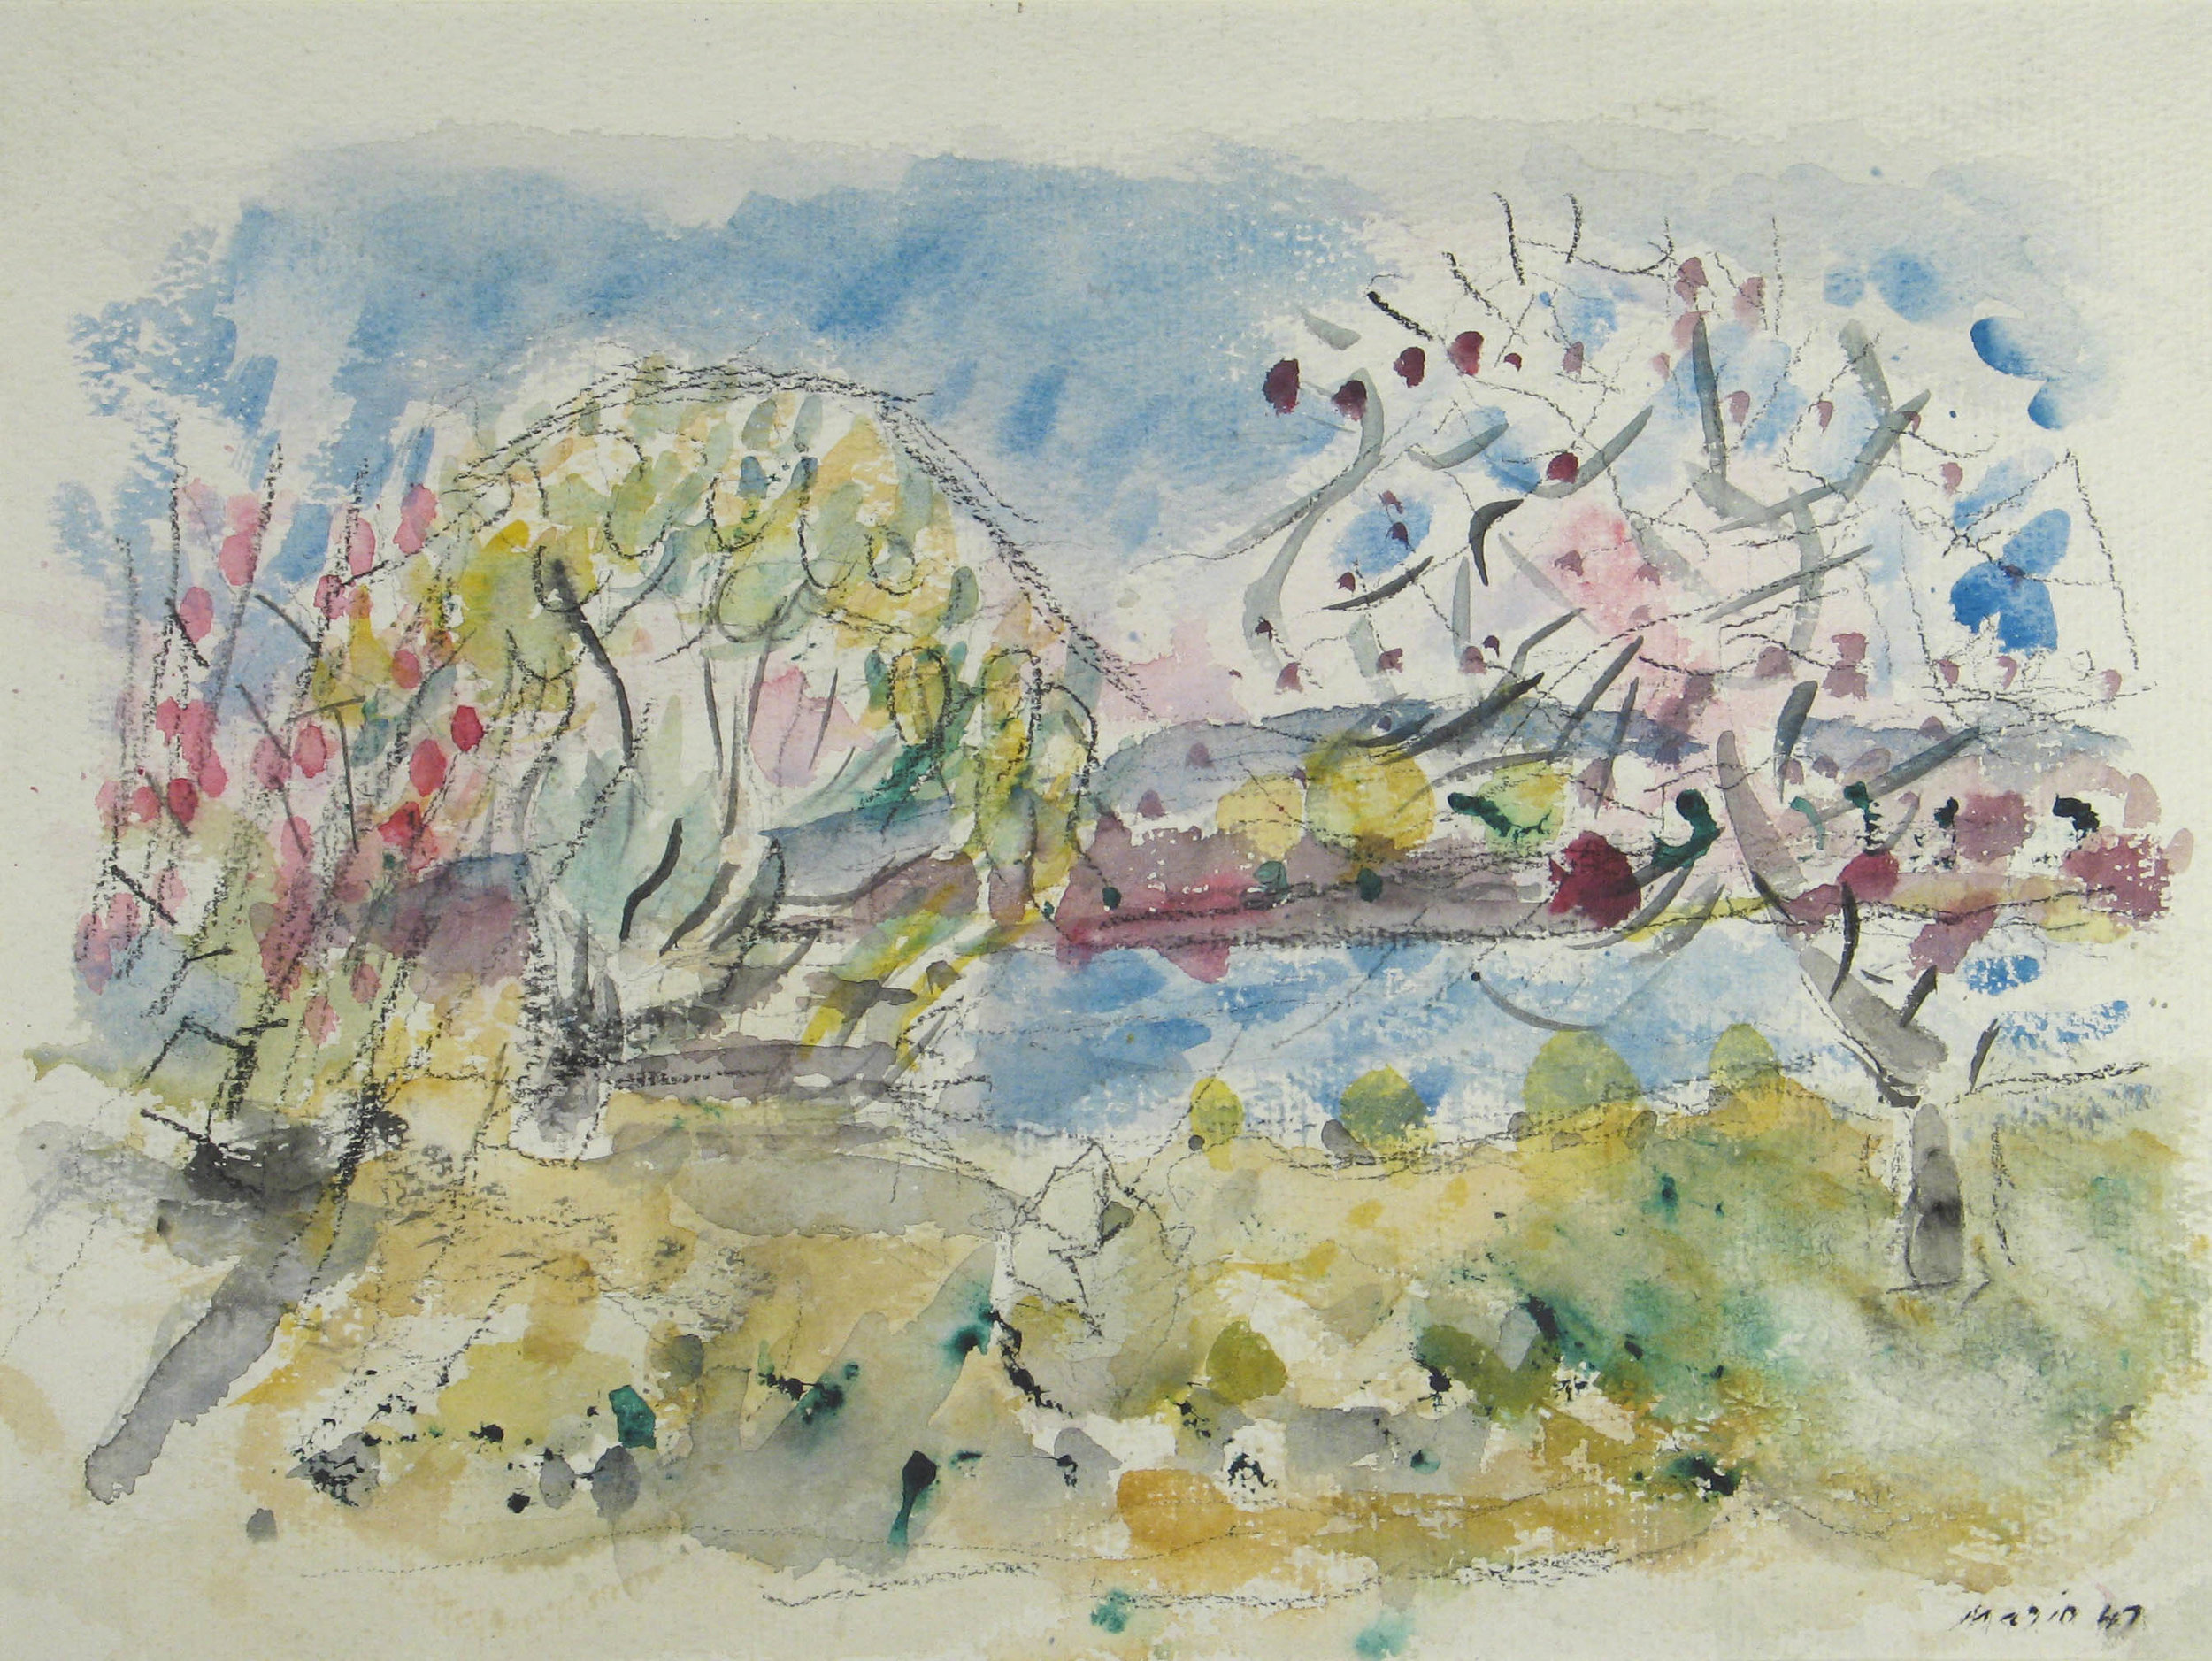 Watercolor of trees with pink blooms by the riverside